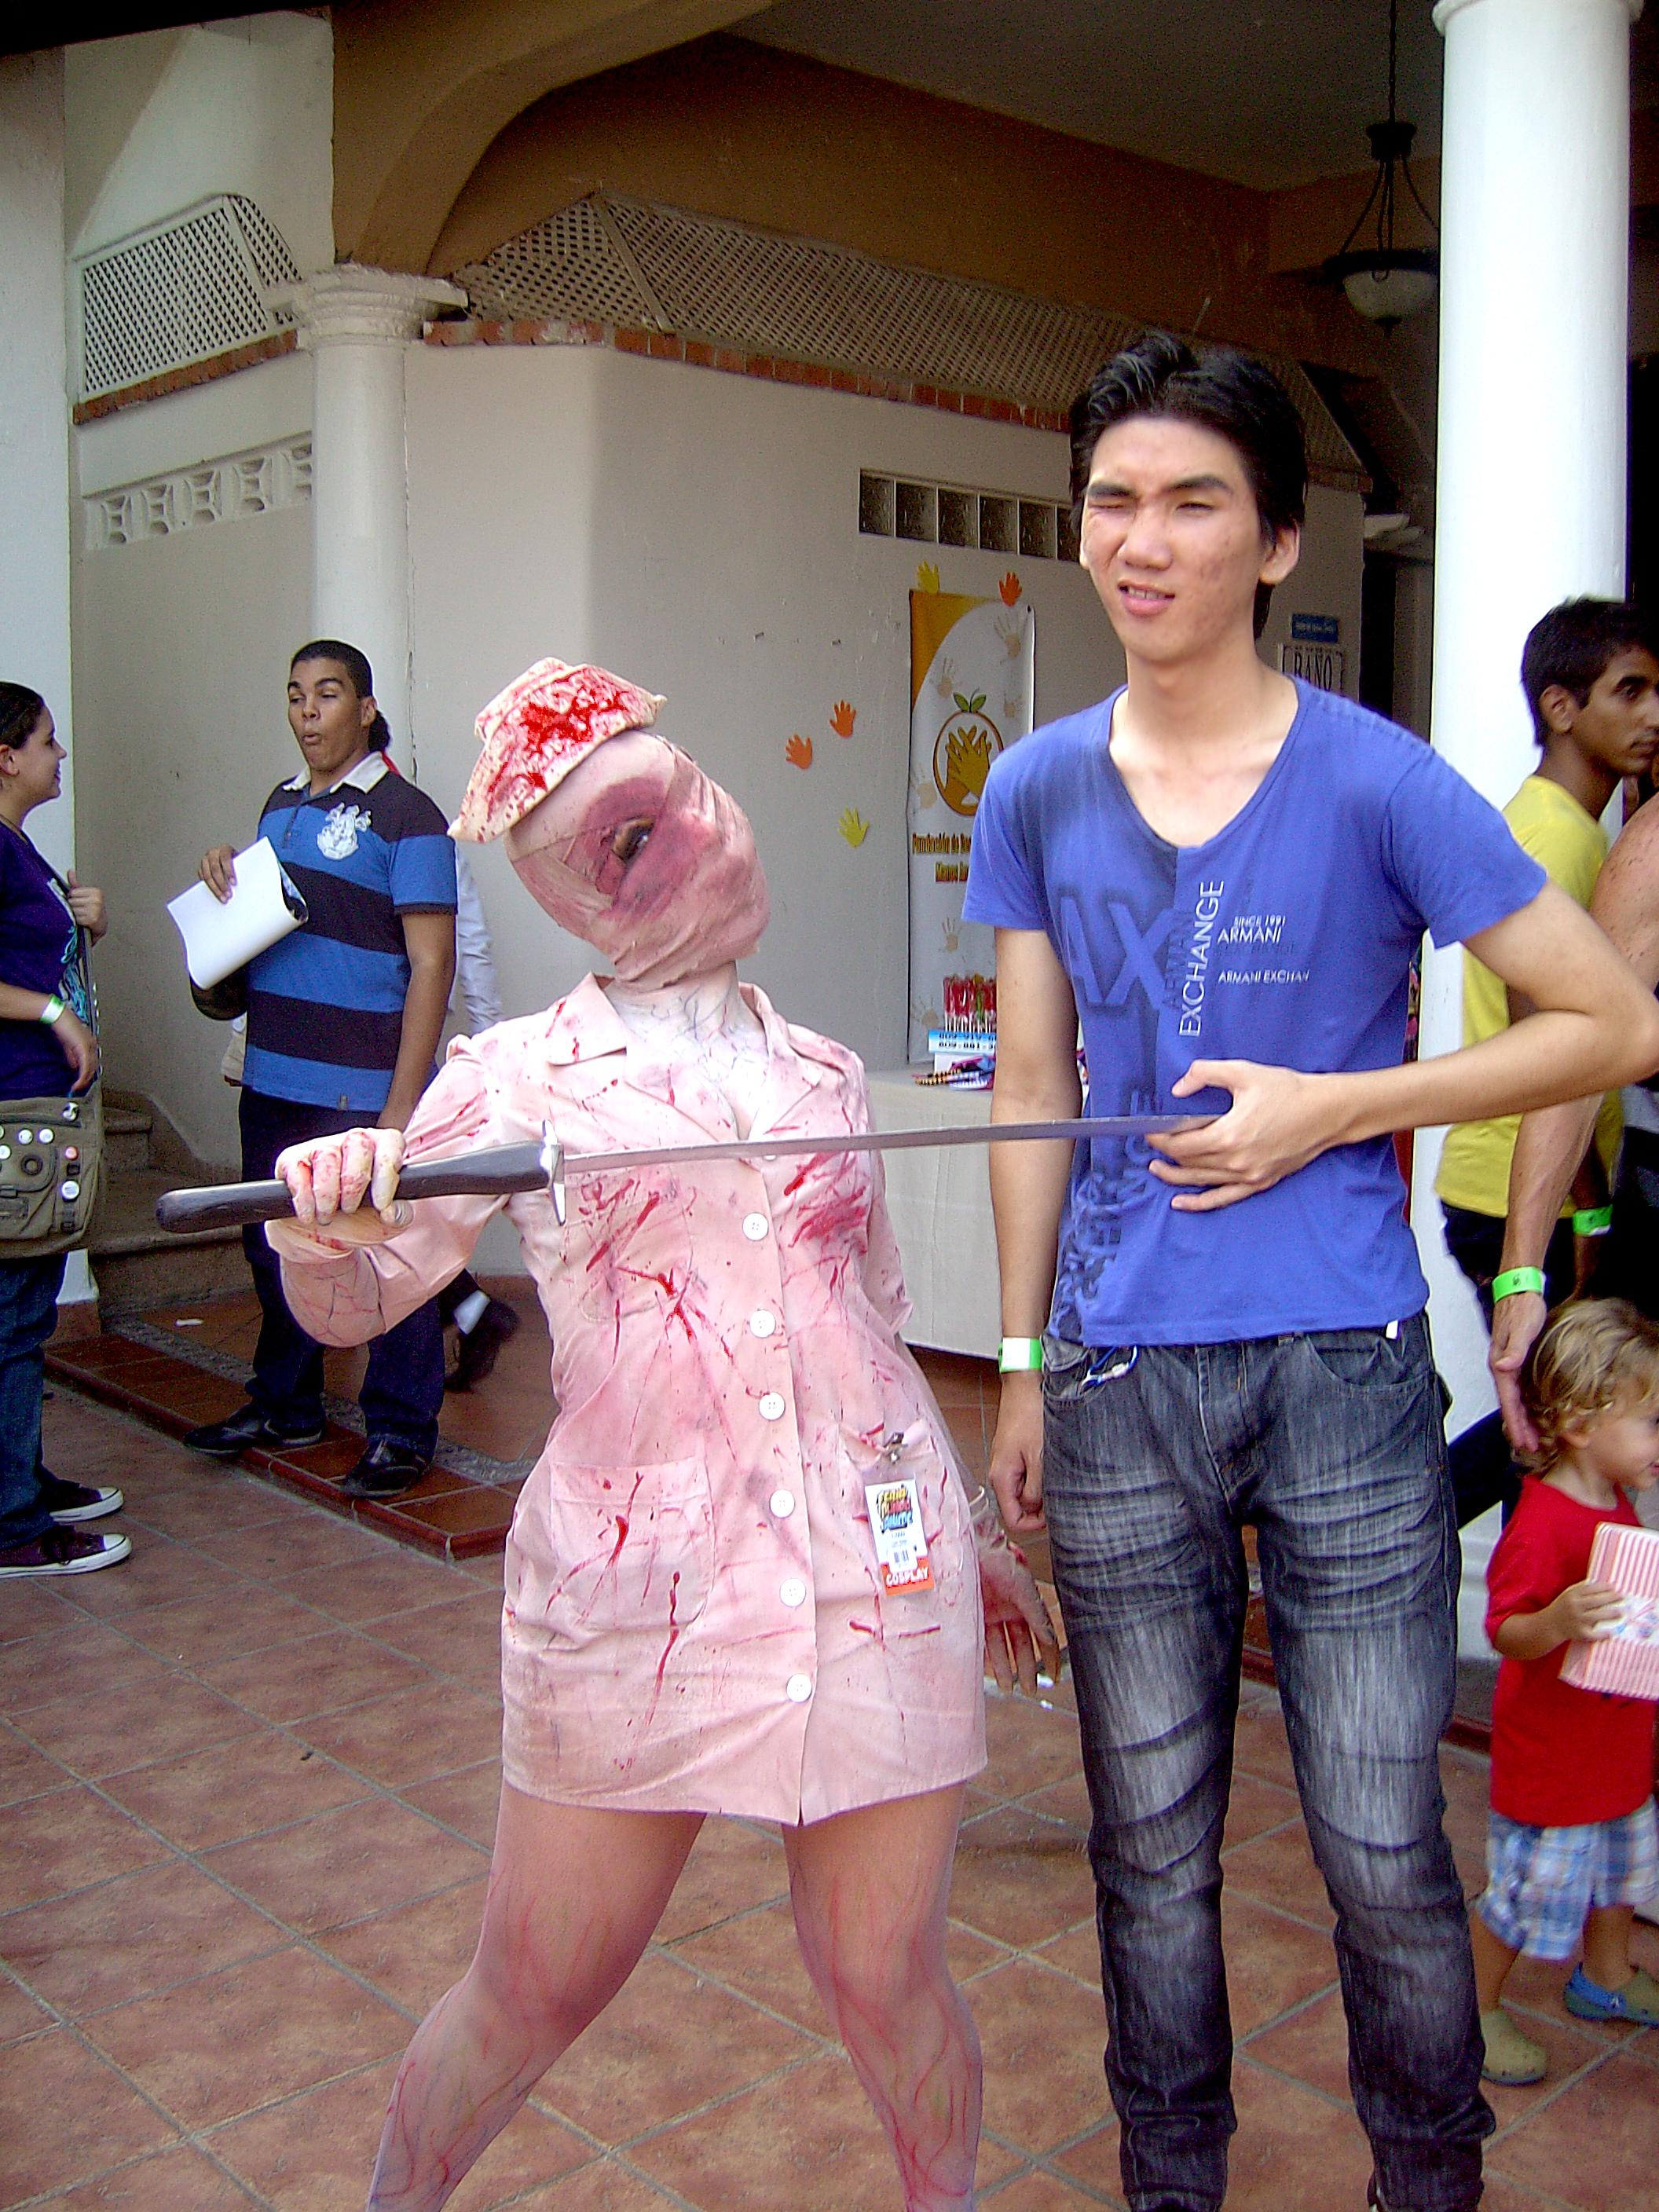 Enfermera Silent Hill Cosplay Feria Mundo Anime by EnriqueNg on